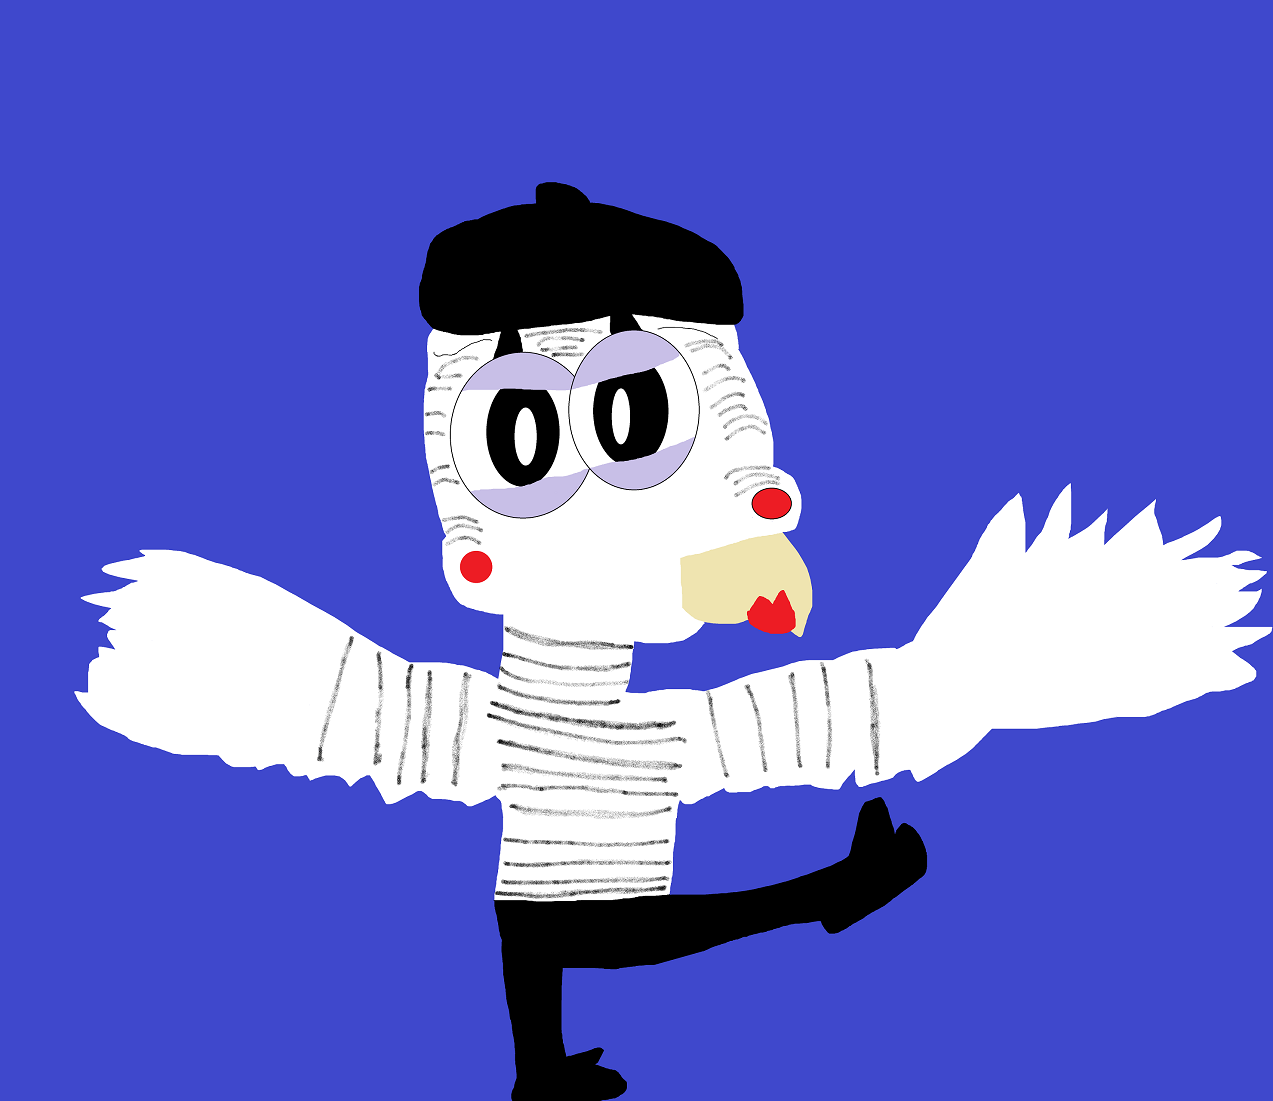 MIme Bird Karate Stance  MS Paint by Falconlobo